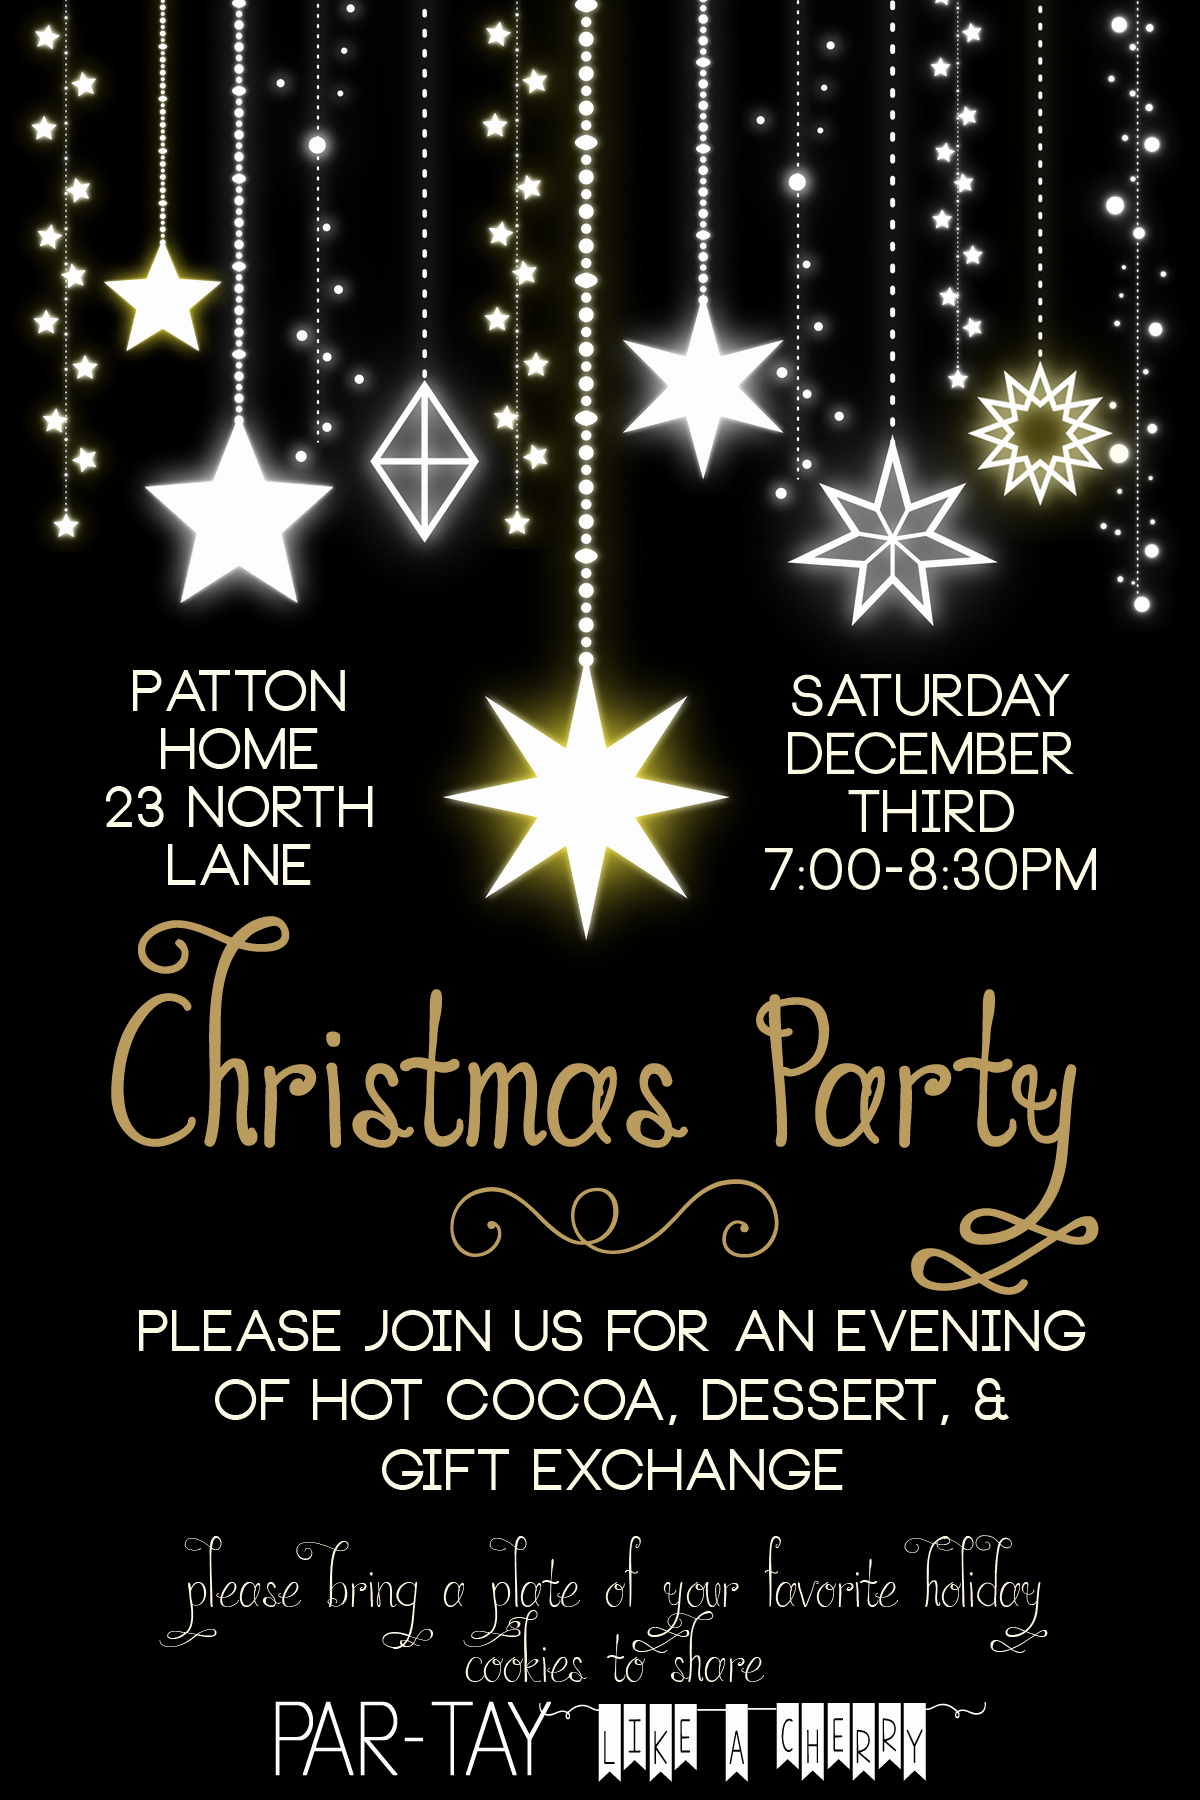 Free Christmas Party Invitation Templates Inspirational Free Christmas Party Invitation Party Like A Cherry